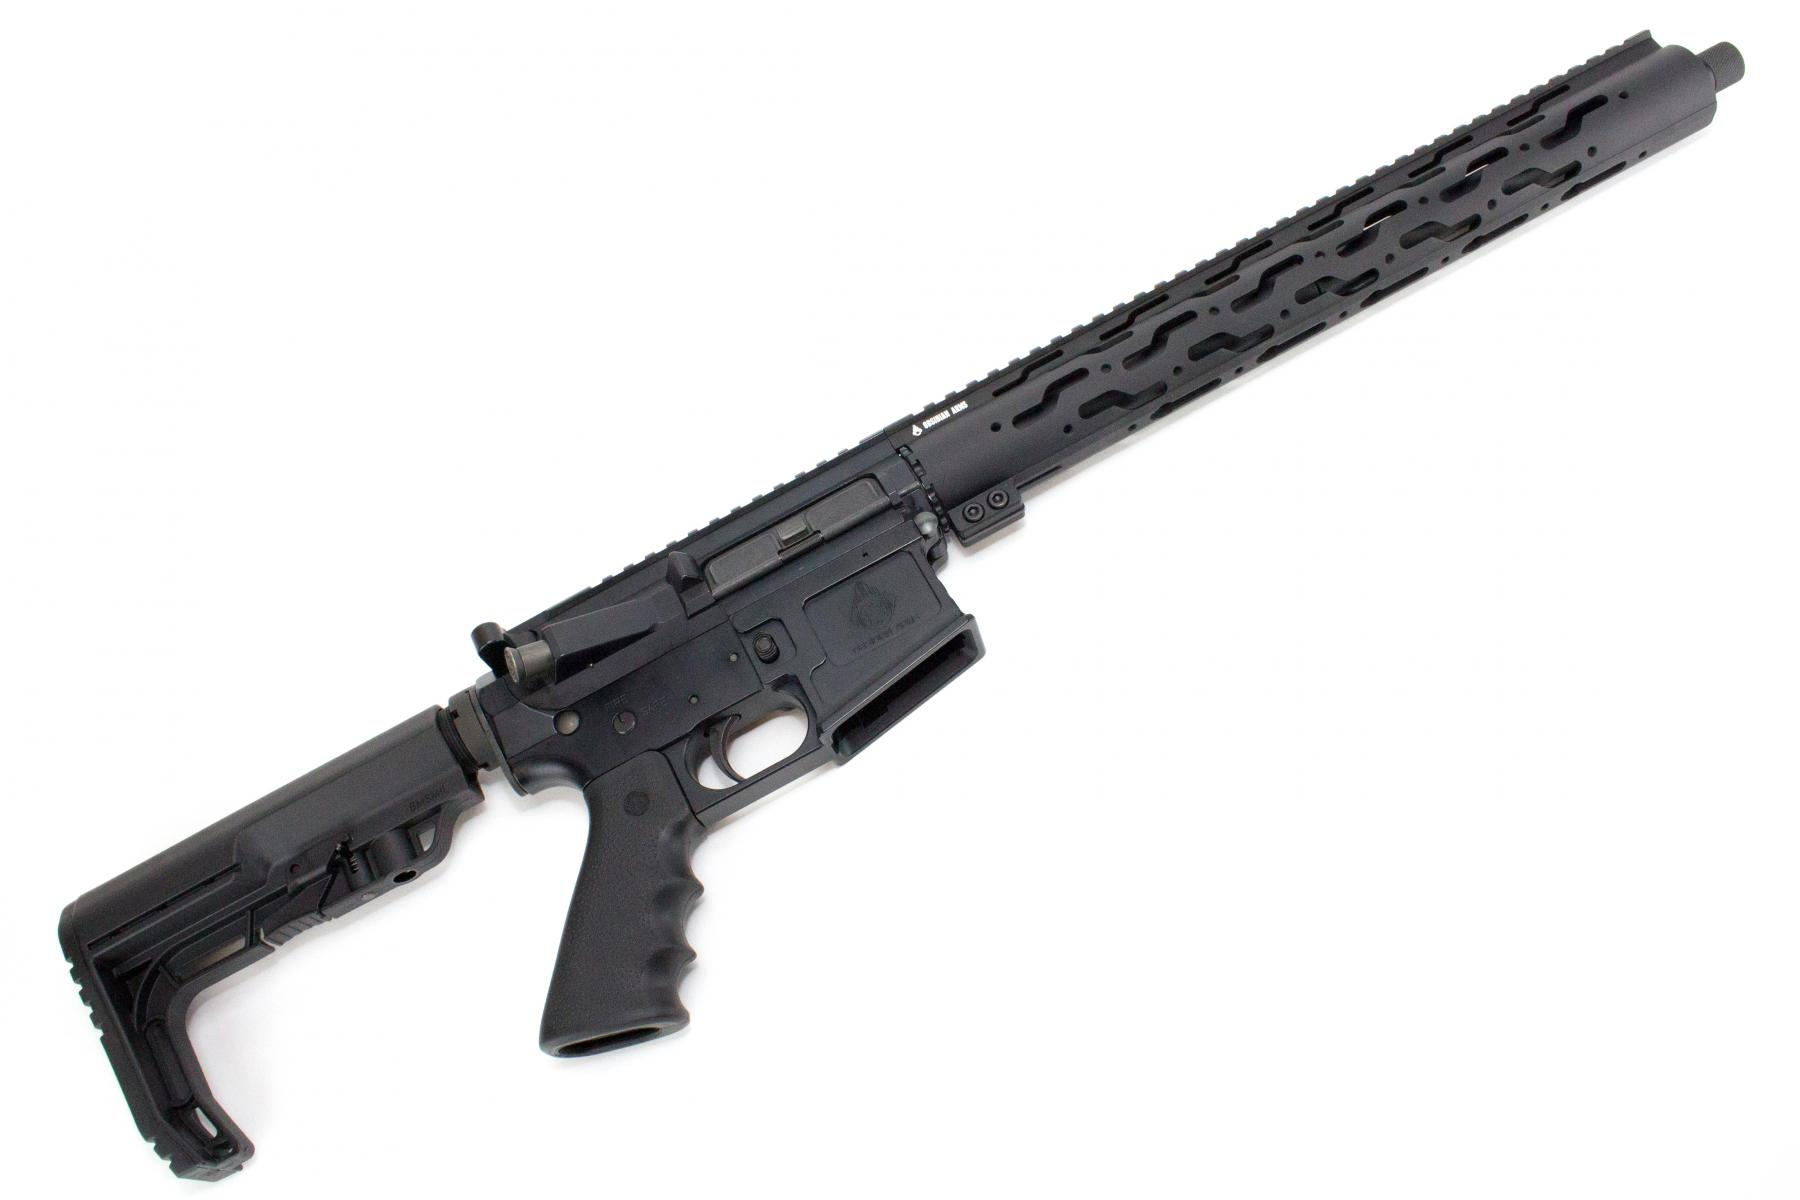 "Obsidian Arms OA-15 |300BLK 16"" Stainless Teflon Coated Barrel, Billet Matched Recievers, Hard Anodized, 15"" ""S"" S-pattern Free Float Handguard, Hogue Rubber Grip, MFT Stock"